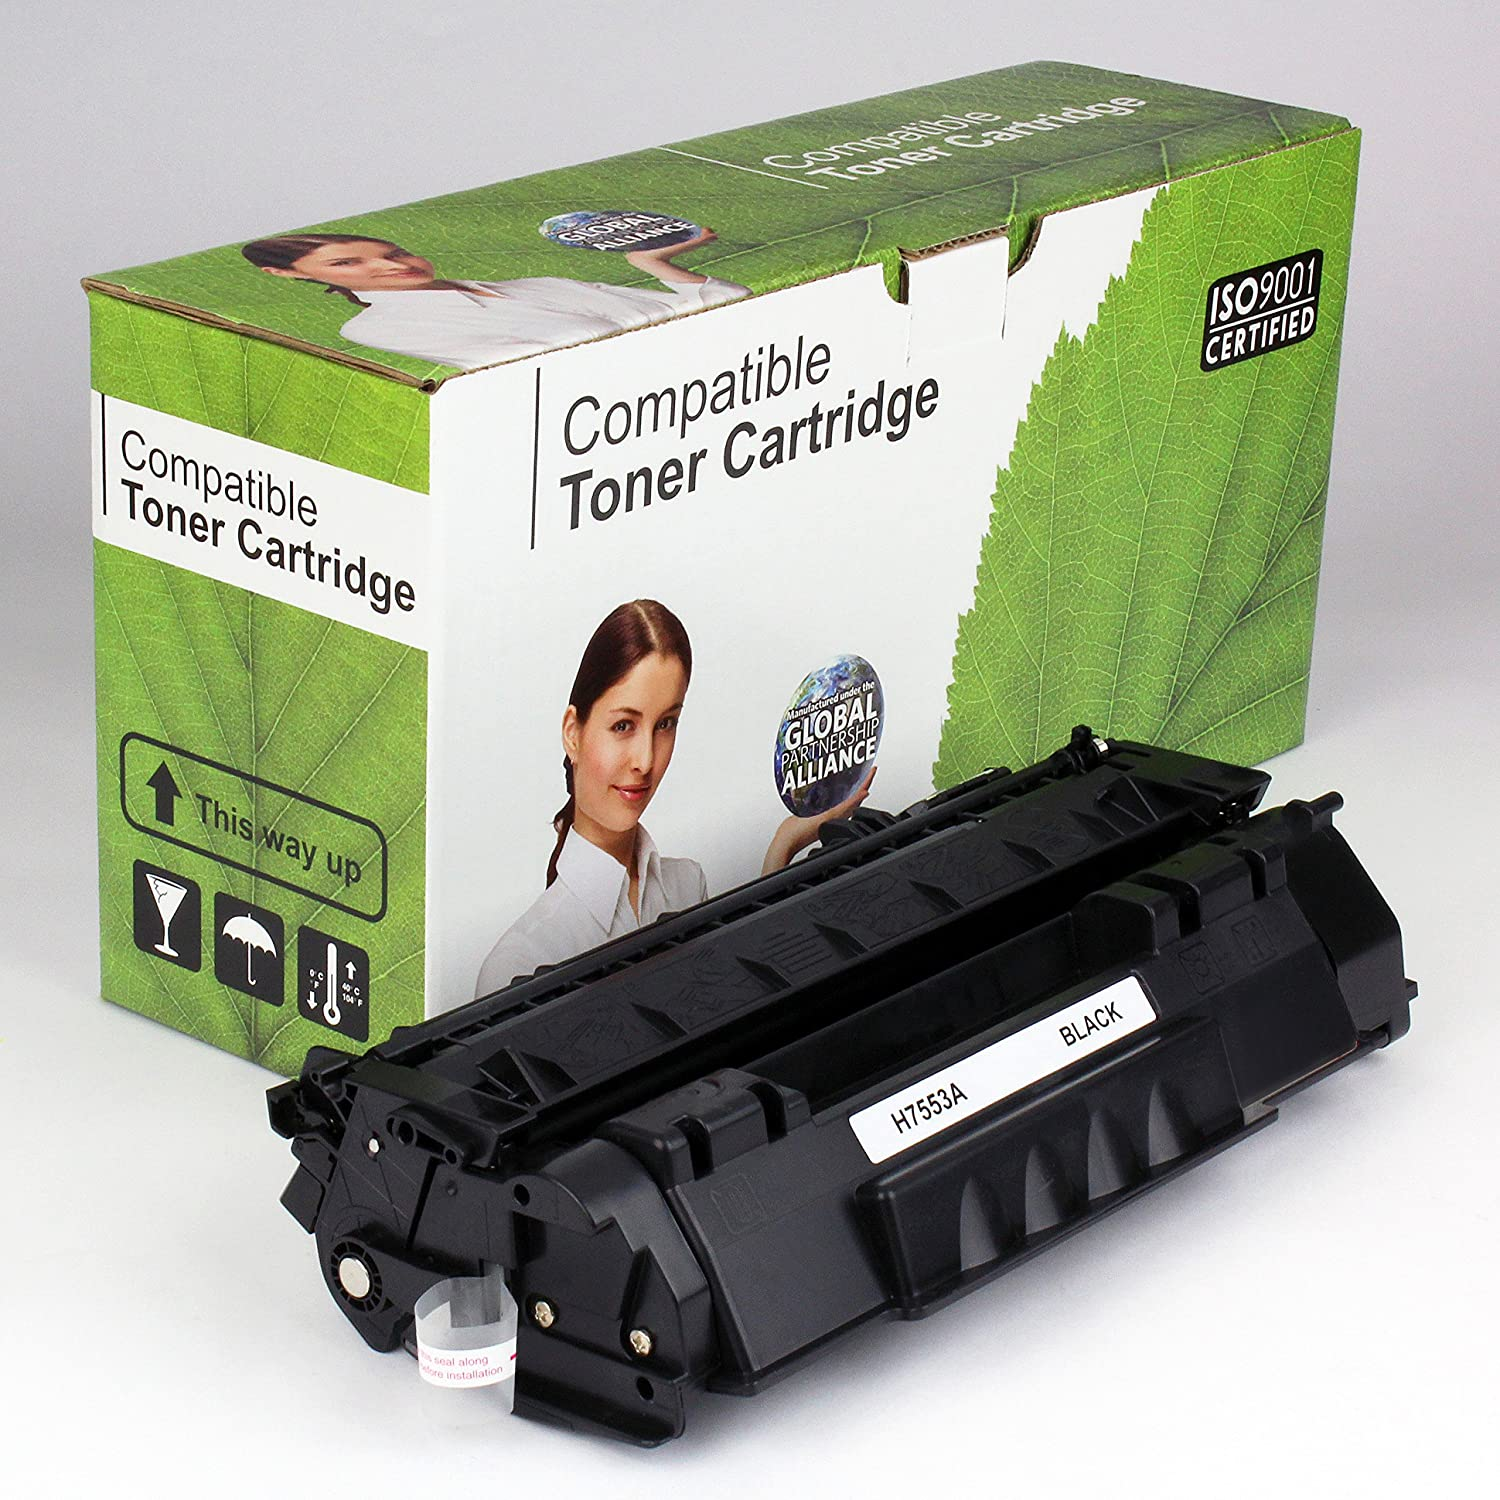 Value Brand Replacement für Hp 53ein Q7553ein Toner Cartridge für Your Business (3,000 Yield)